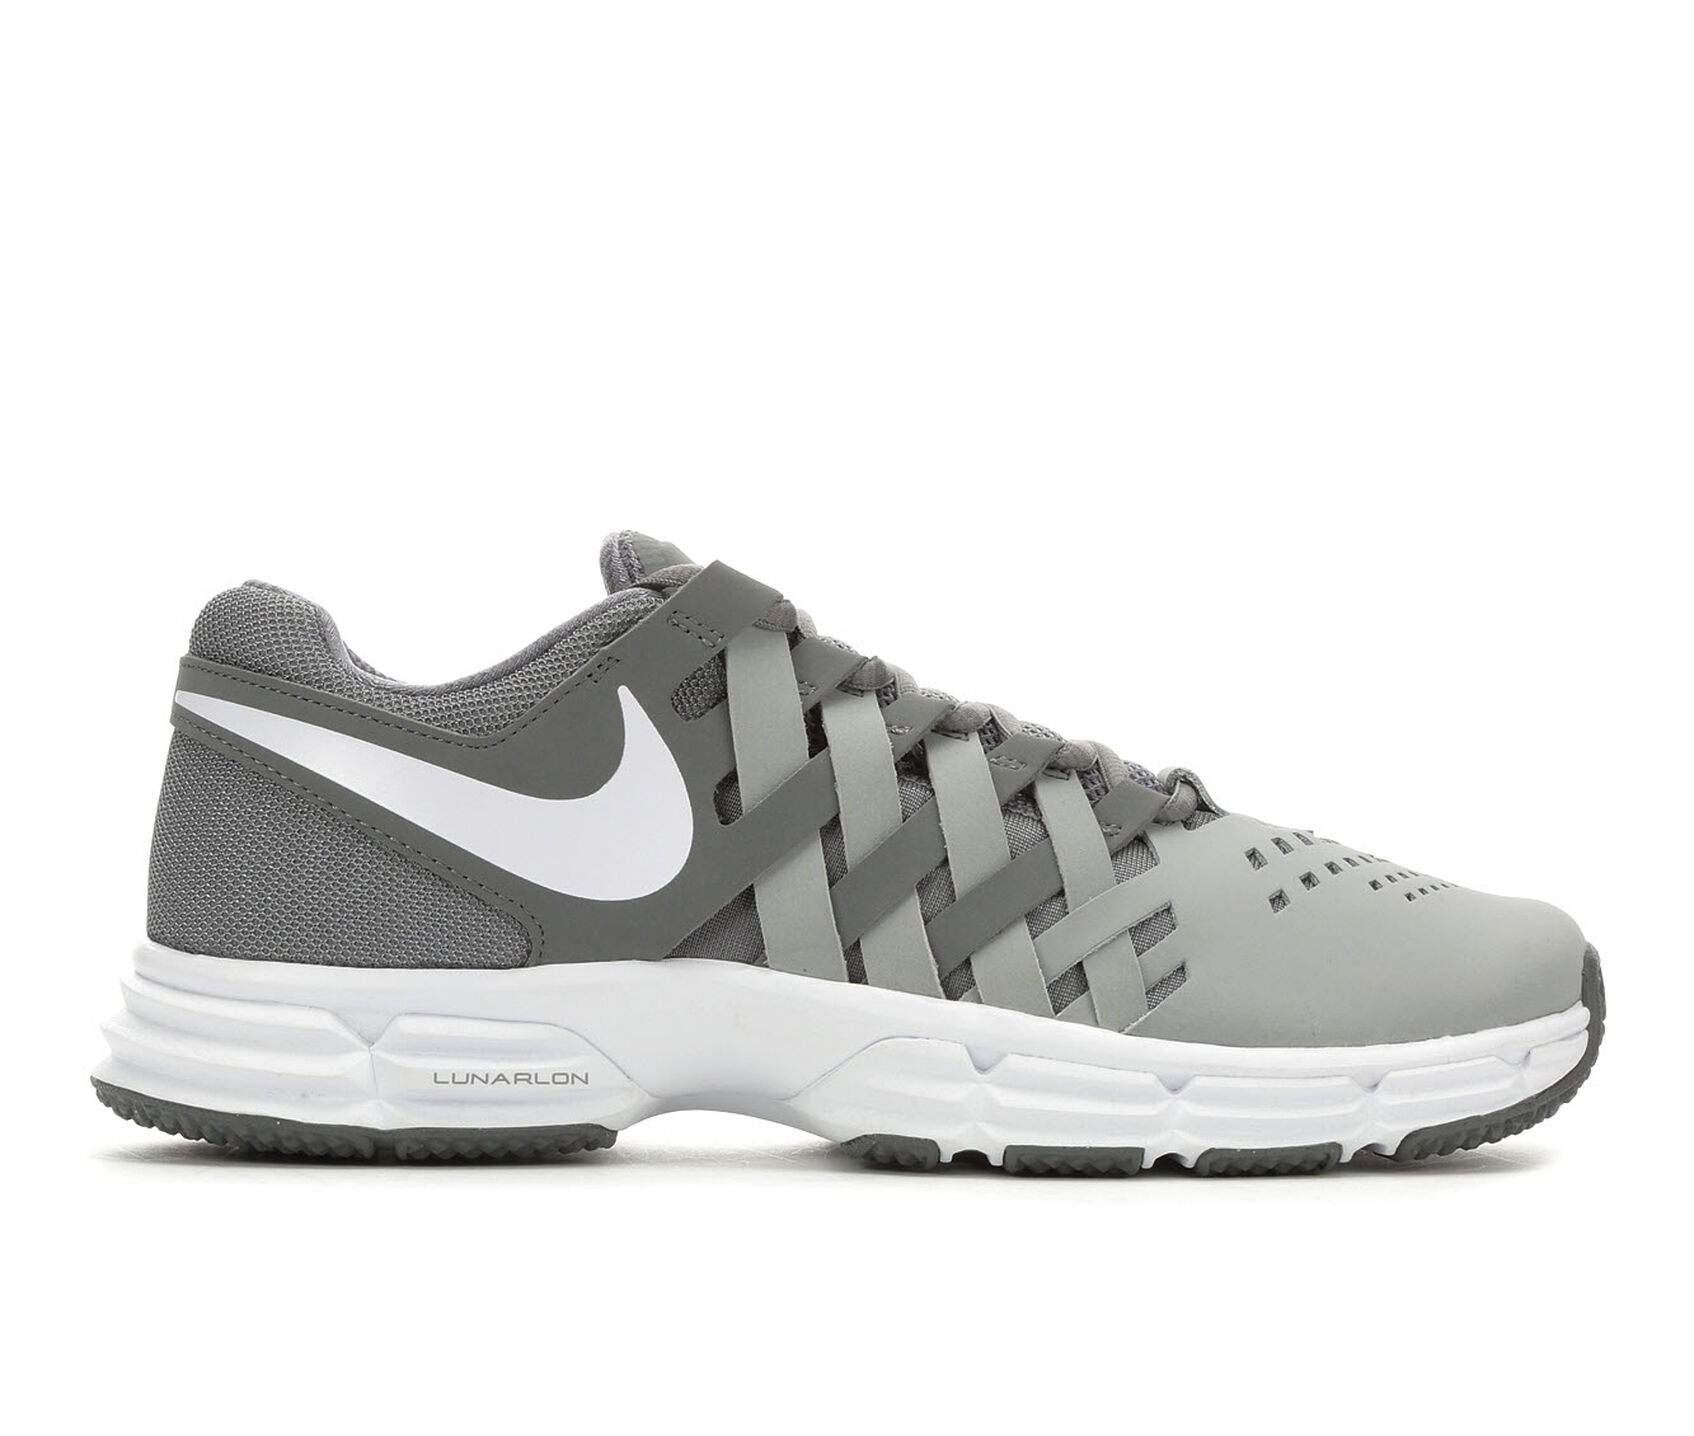 510c8988f012 ... Nike Lunar Fingertrap Training Shoes. Previous